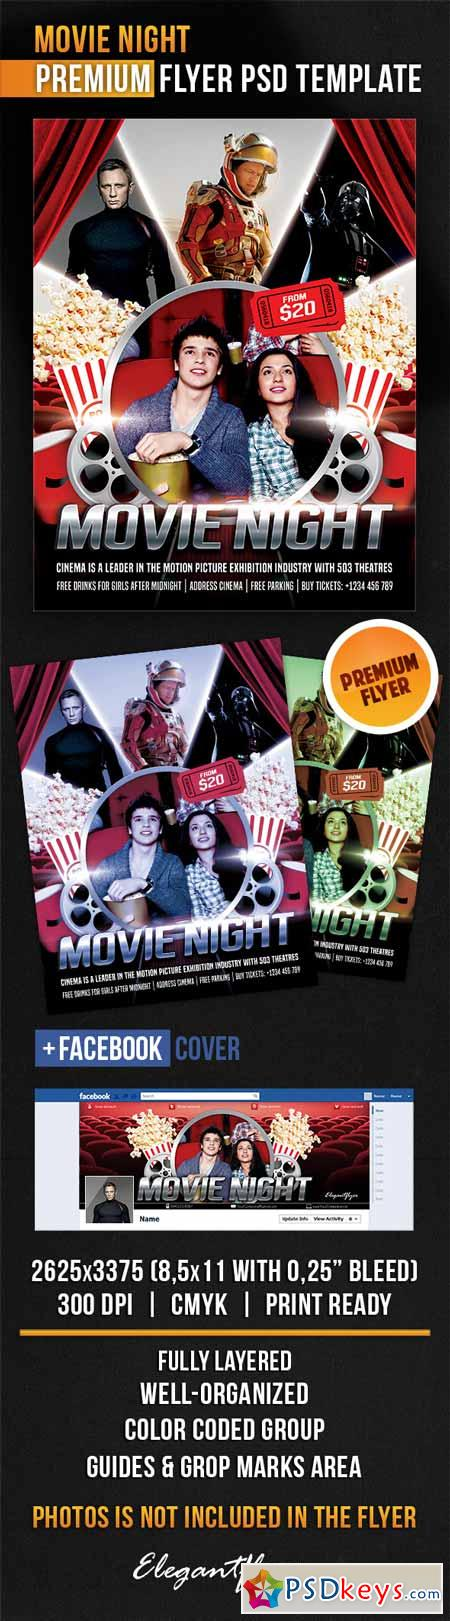 Movie Night Psd Template  Mydrlynx